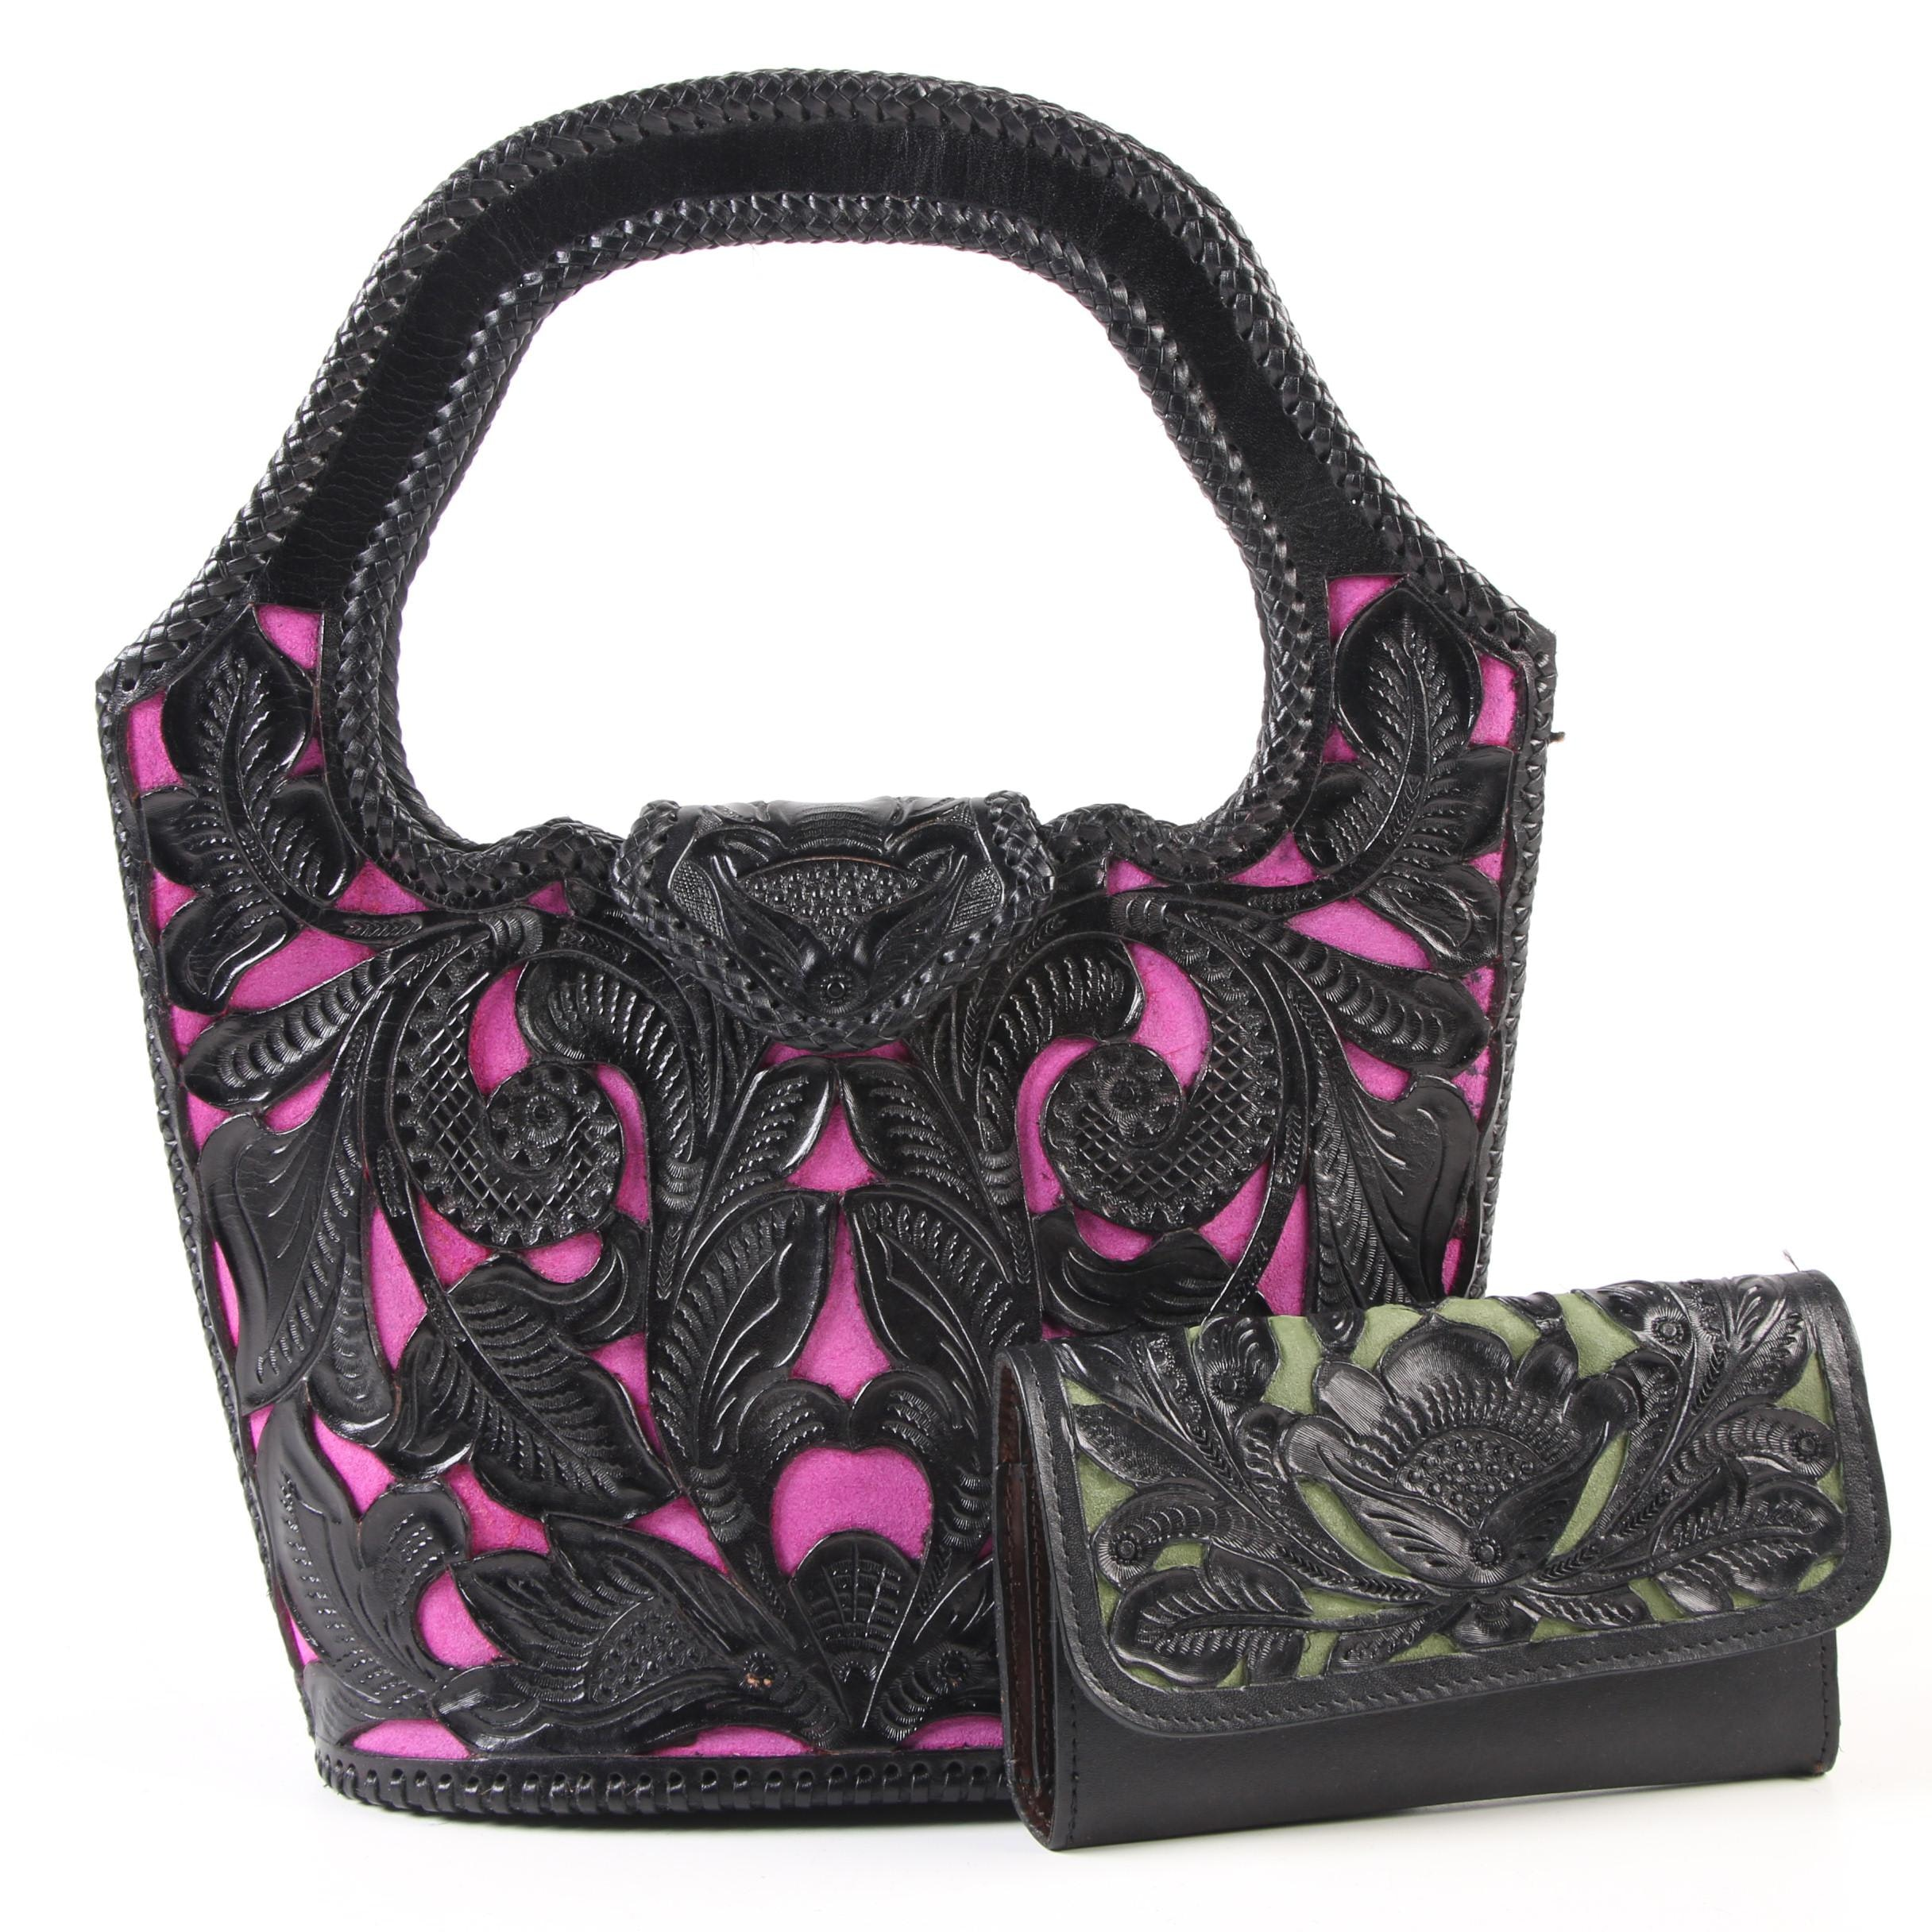 Handbag and Wallet with Openwork Tooled Black Leather and Suede